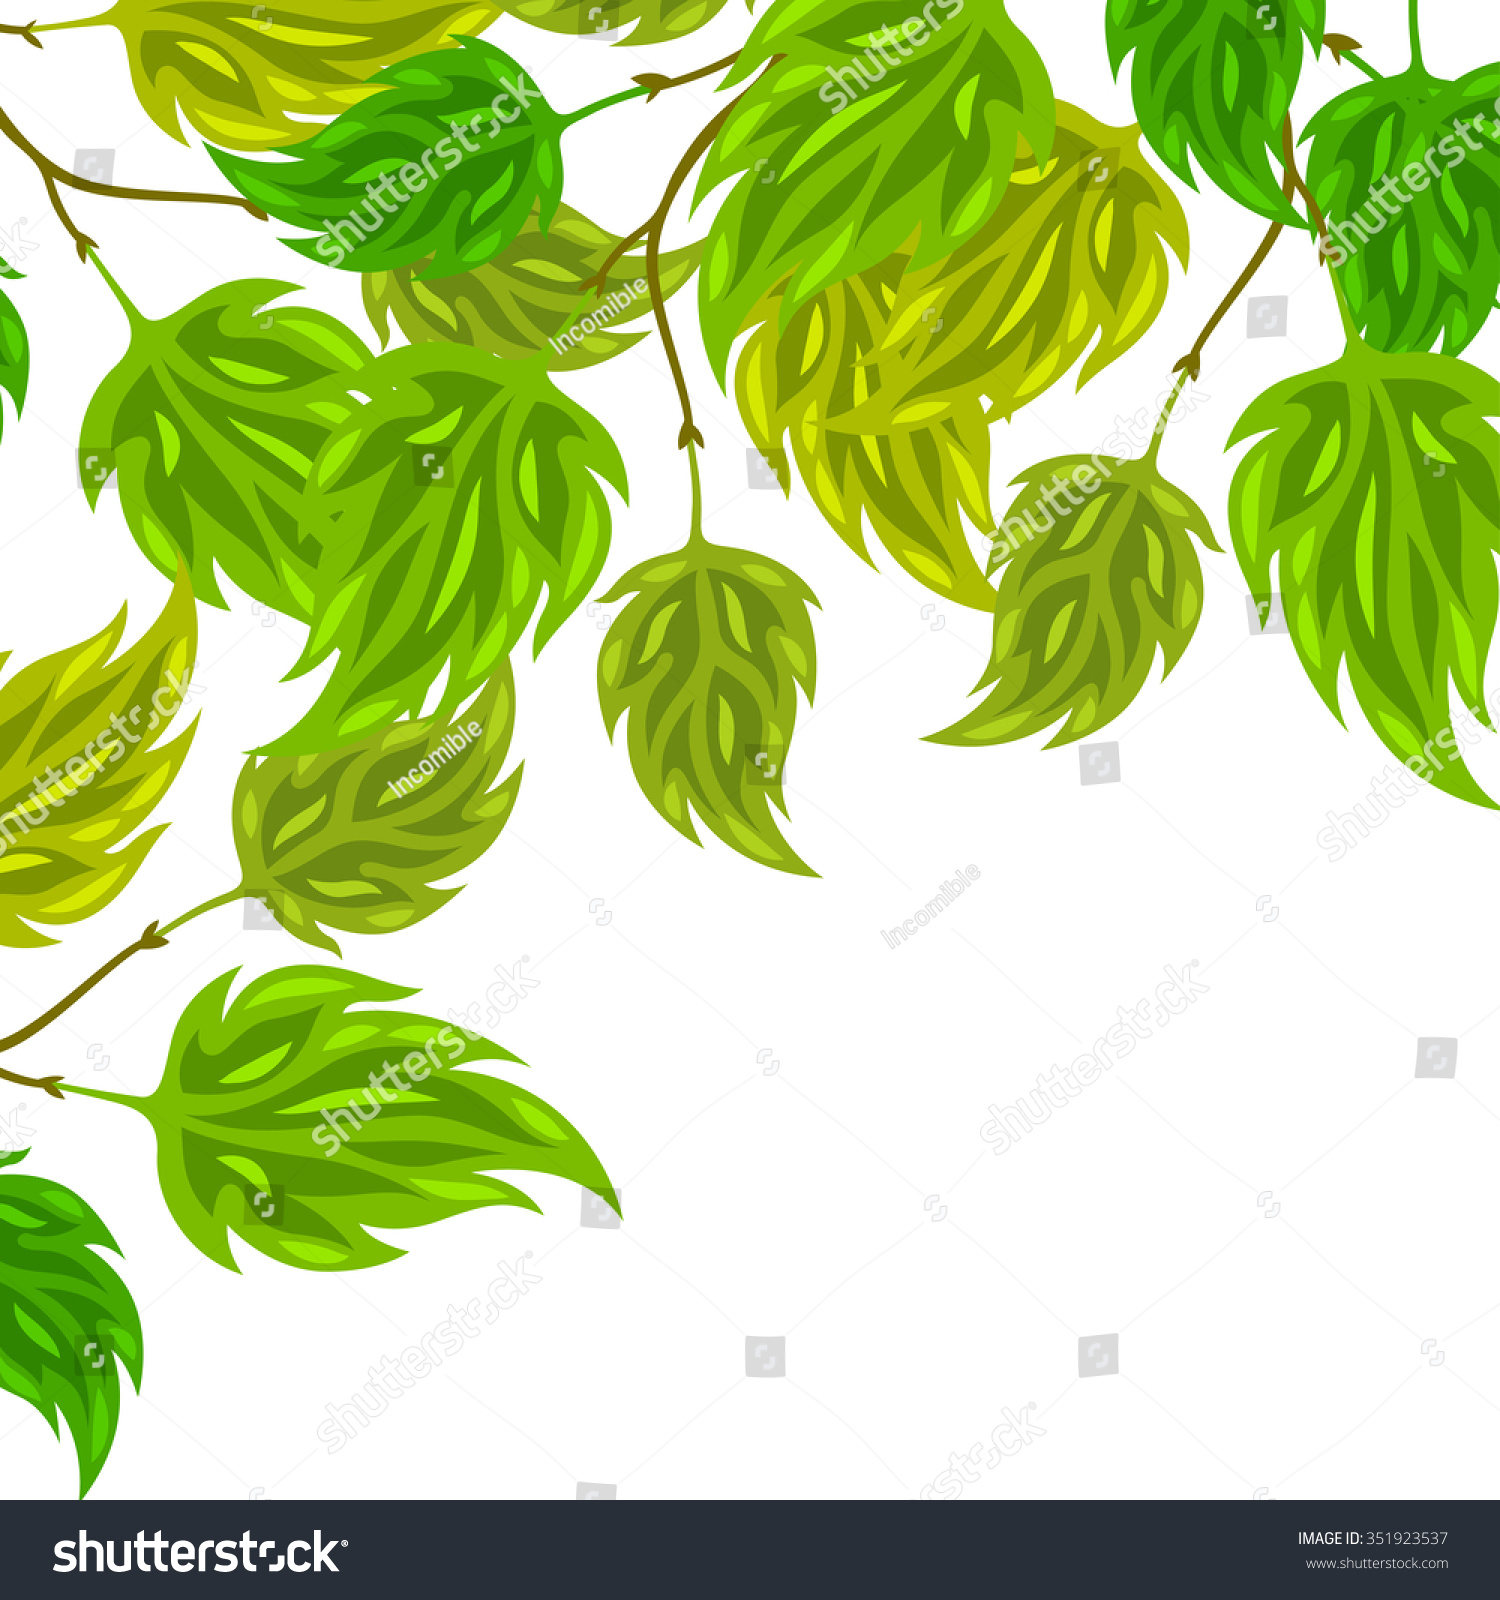 Background Stylized Green Leaves Greeting Cards Stock Vector